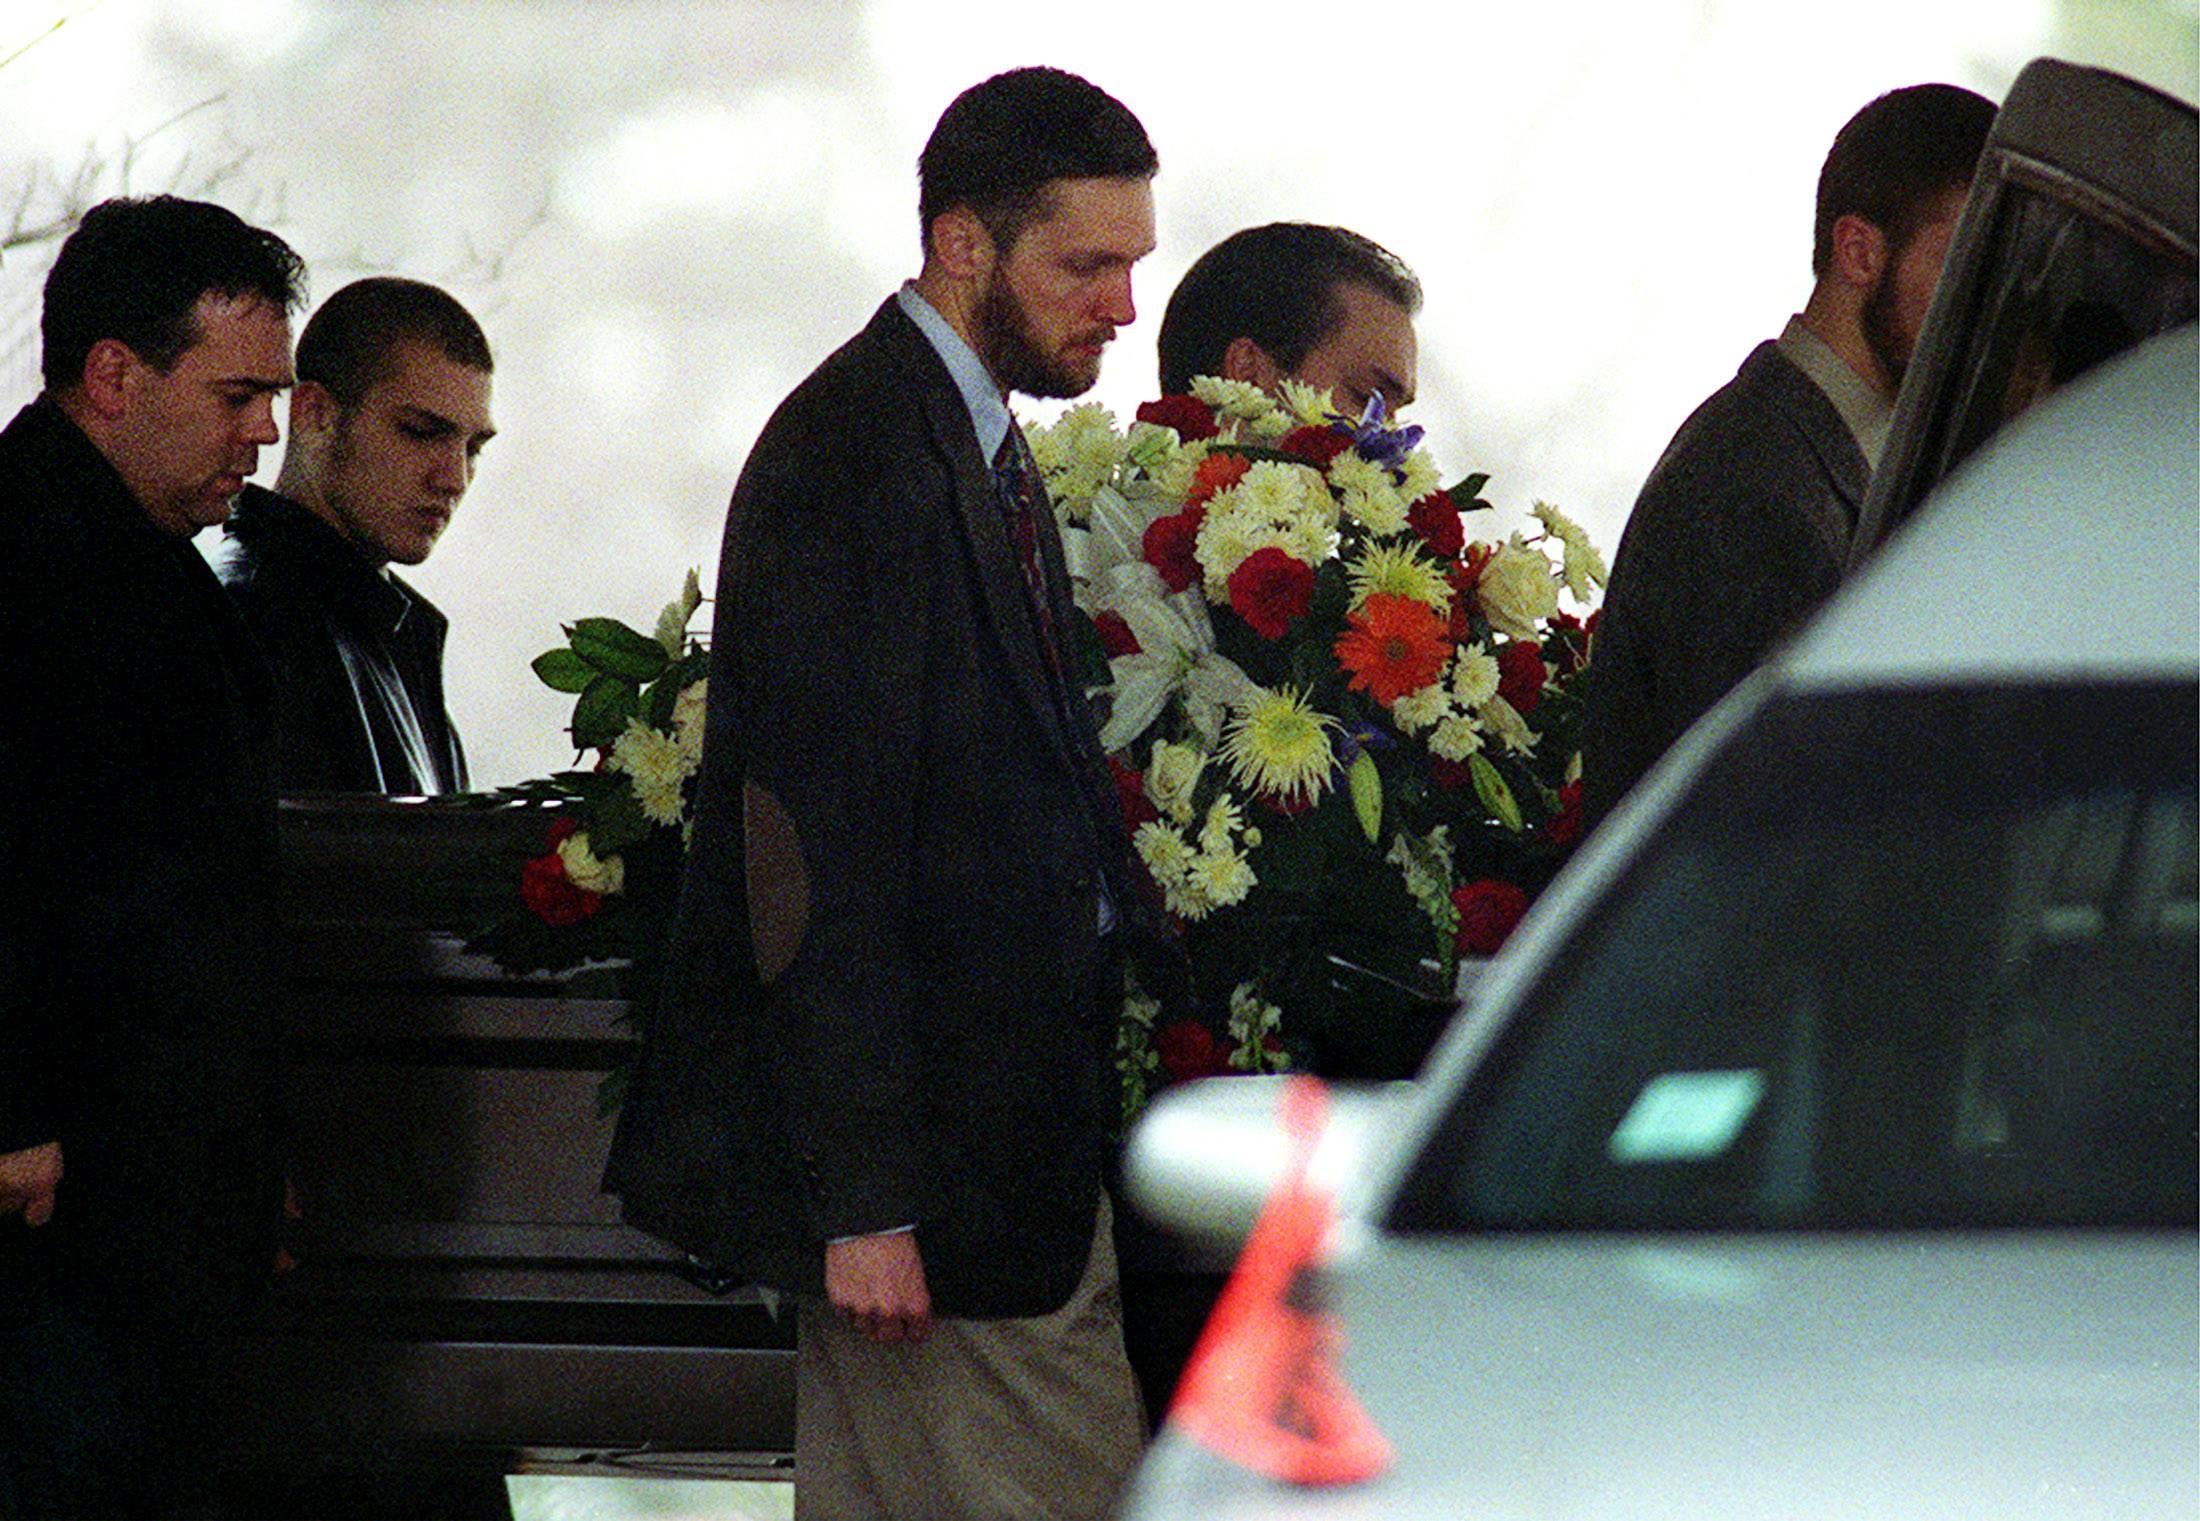 Pallbearers carry Andy Davidson's casket after his funeral Wednesday at Evangelical Free Church.